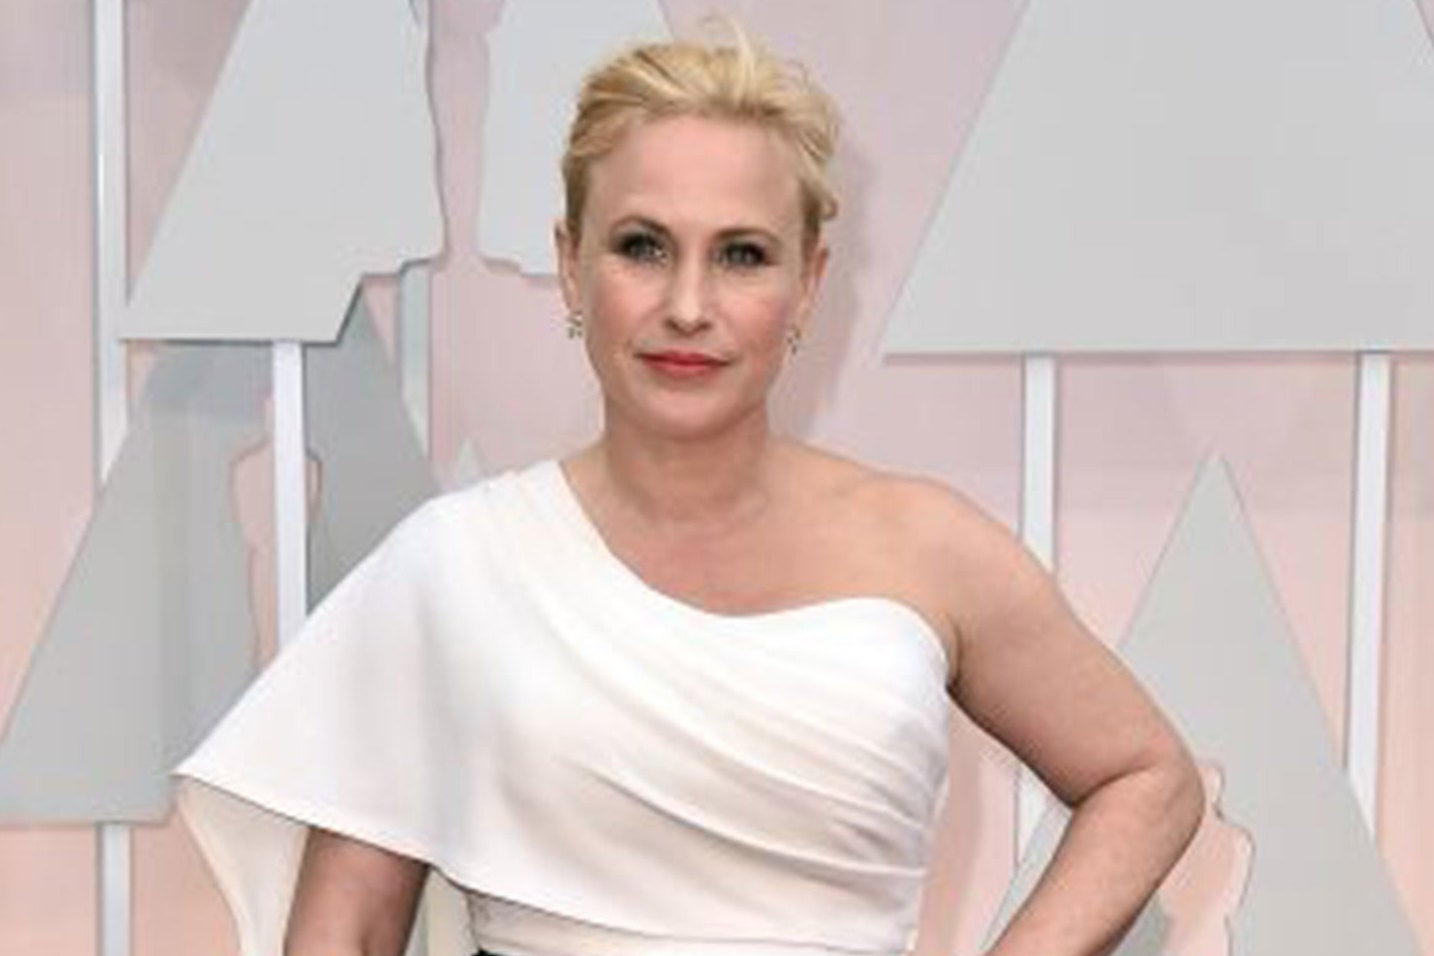 Women 'have to keep fighting' for their rights in the face of US abortion laws, says Patricia Arquette